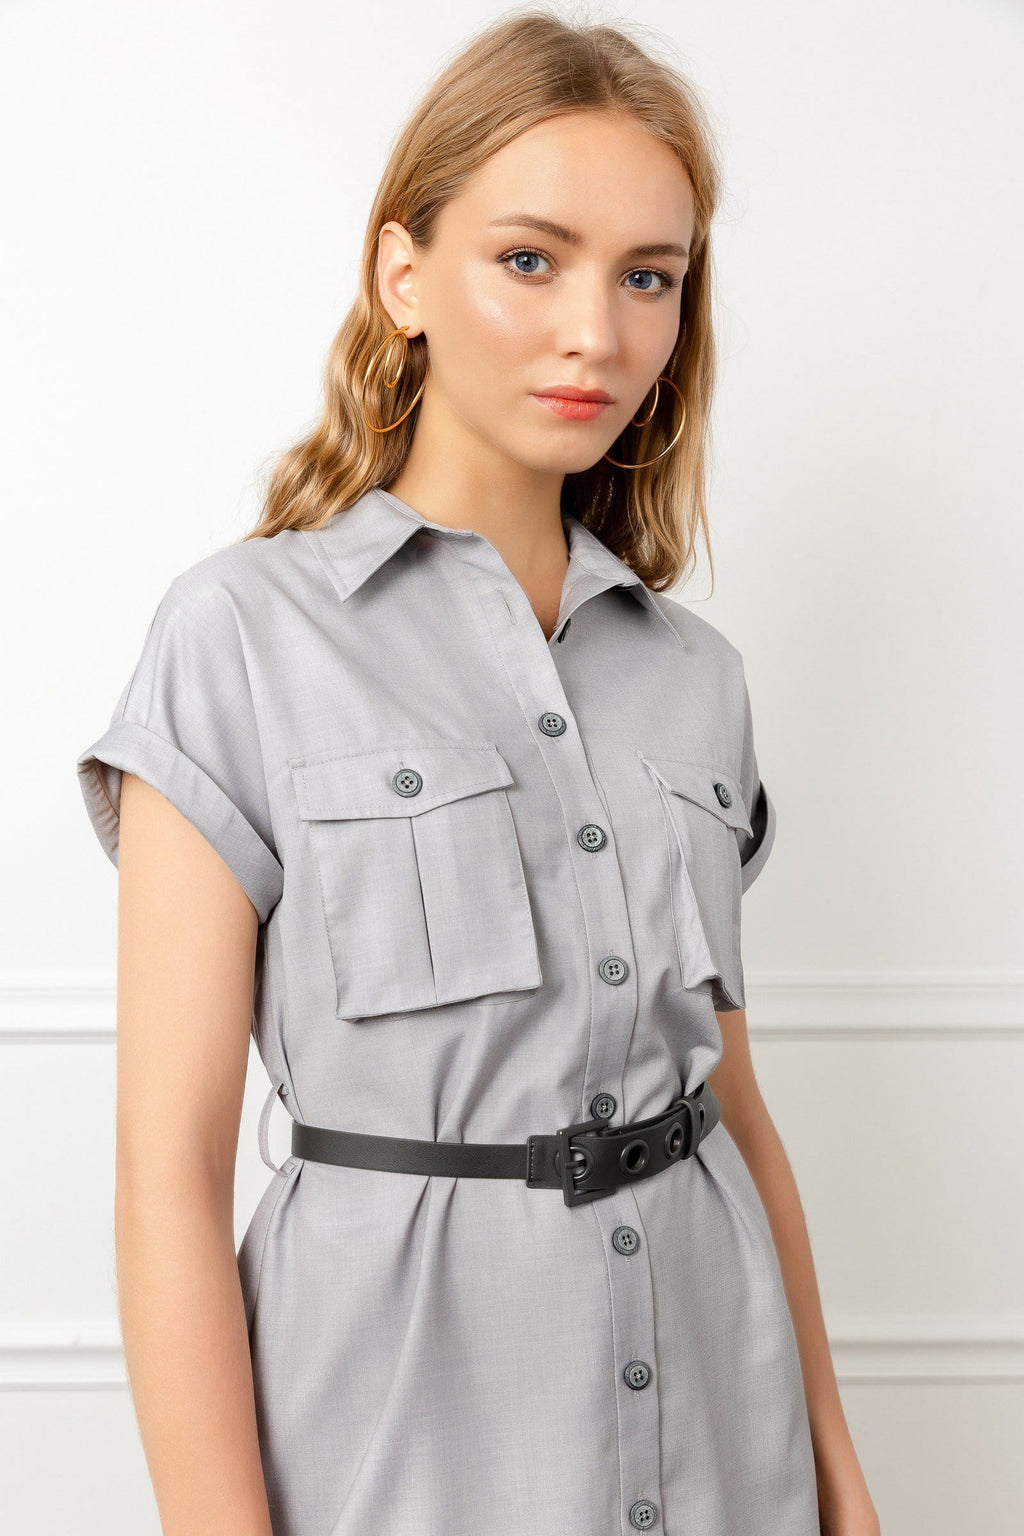 Blonde model wearing grey utility shirt dress by J.ING